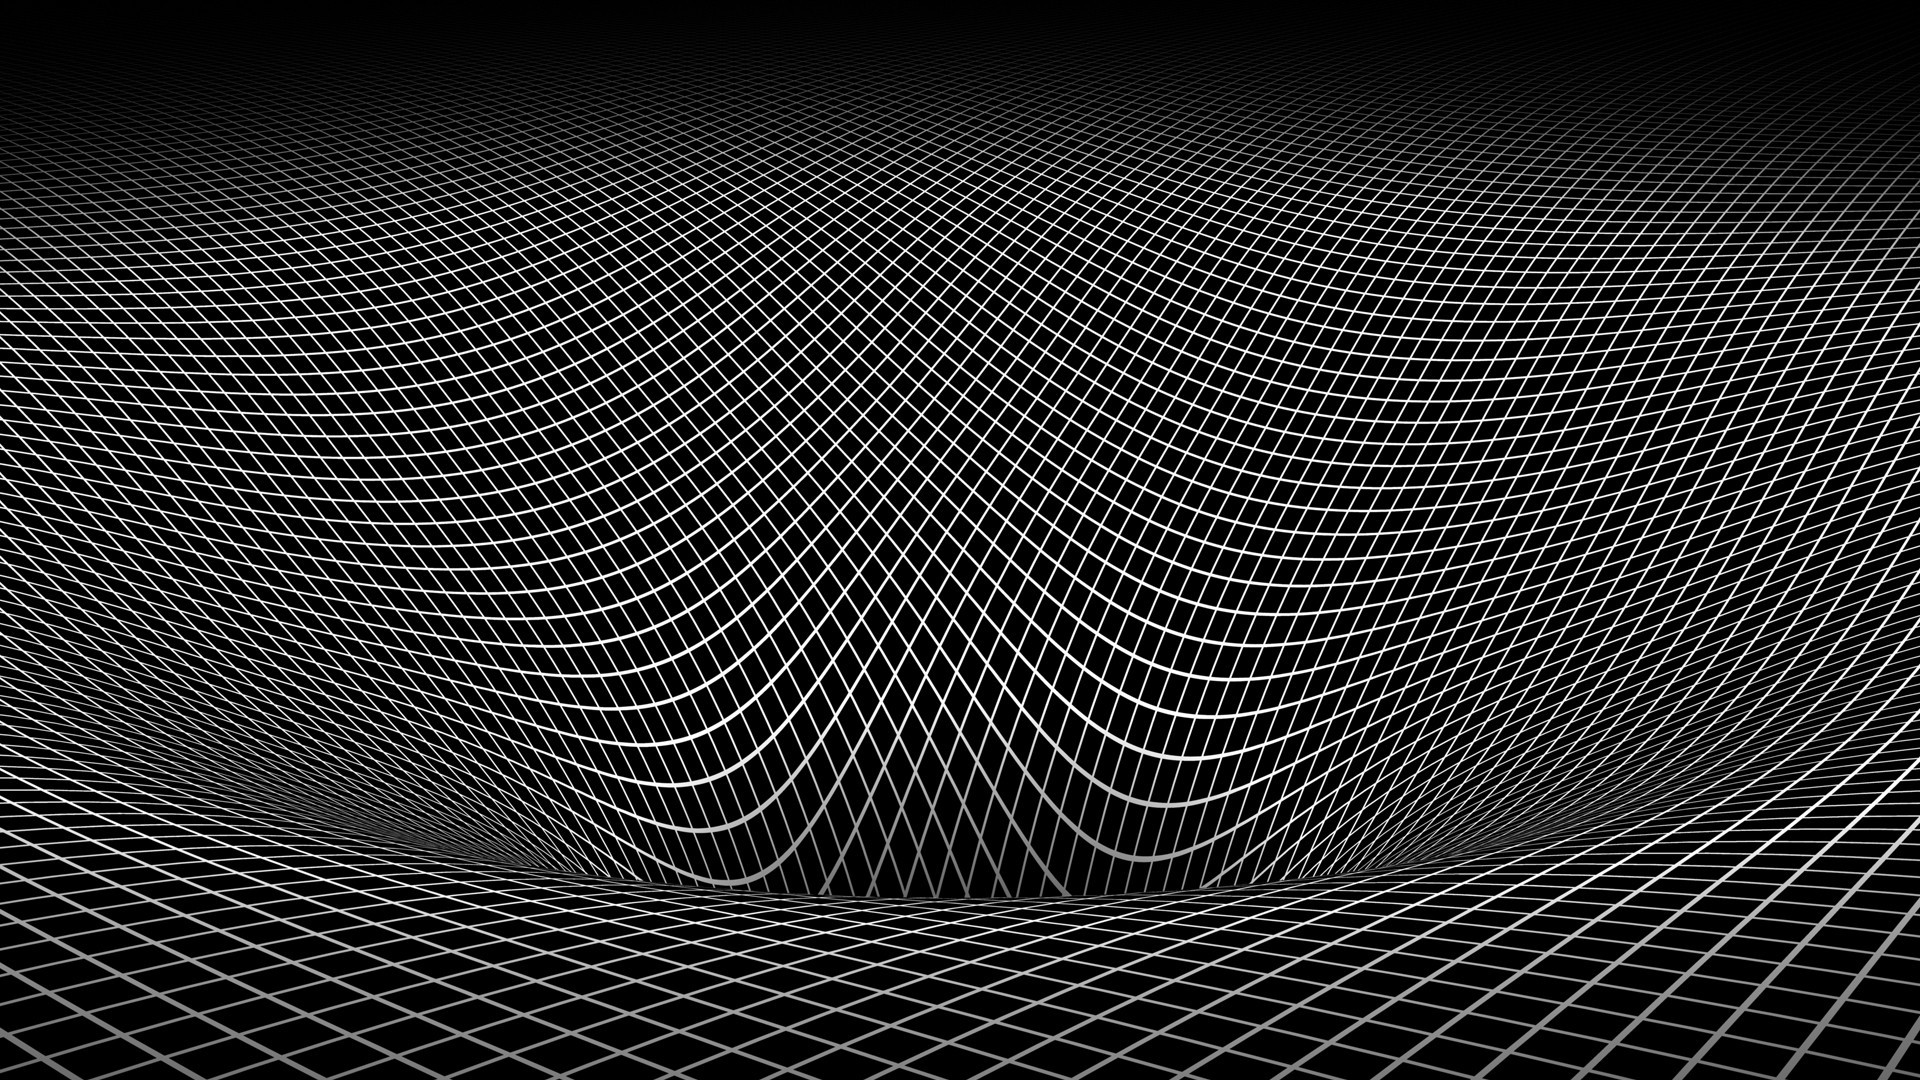 Abstract black and white gravity hole 3d warped wallpaper